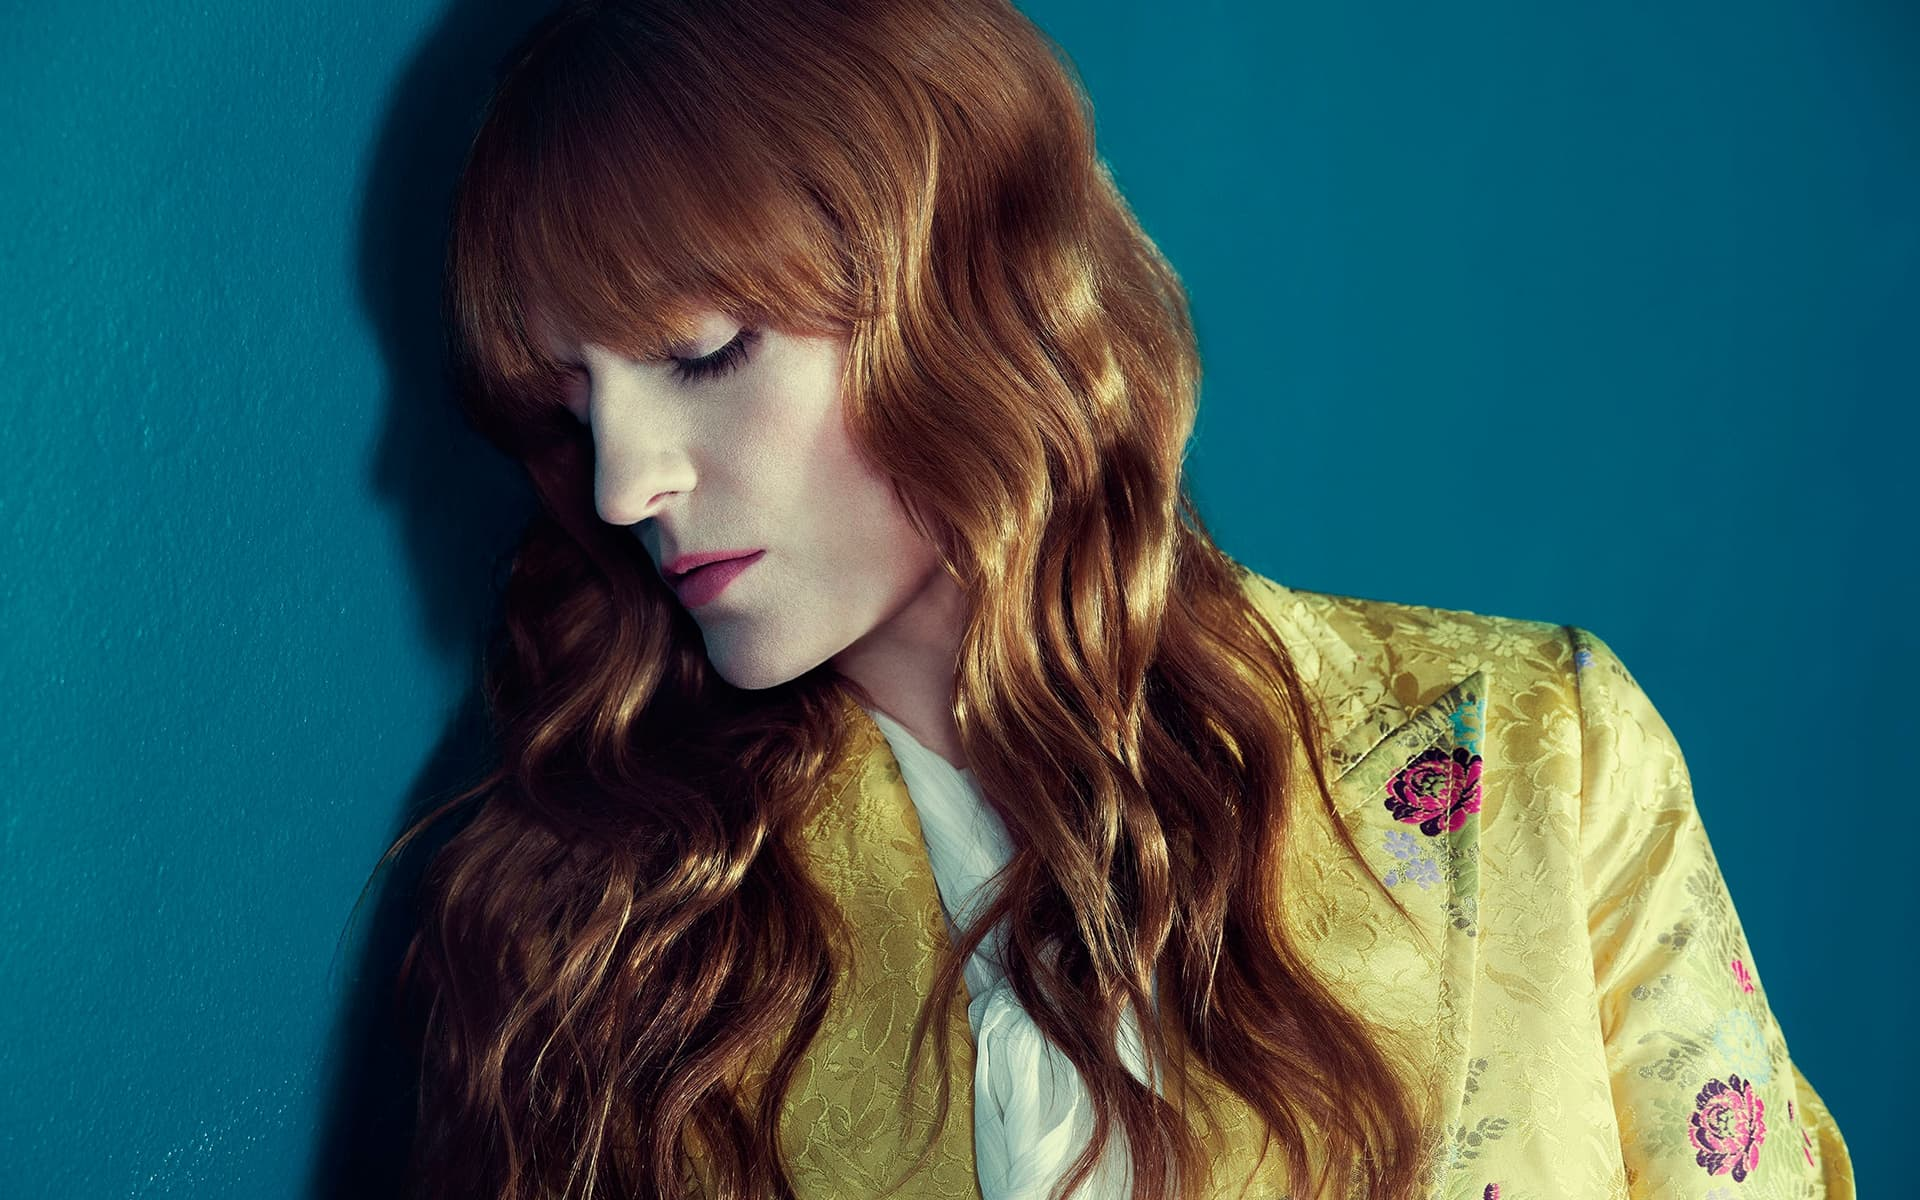 Florence Welch for Desktop wallpaper HD